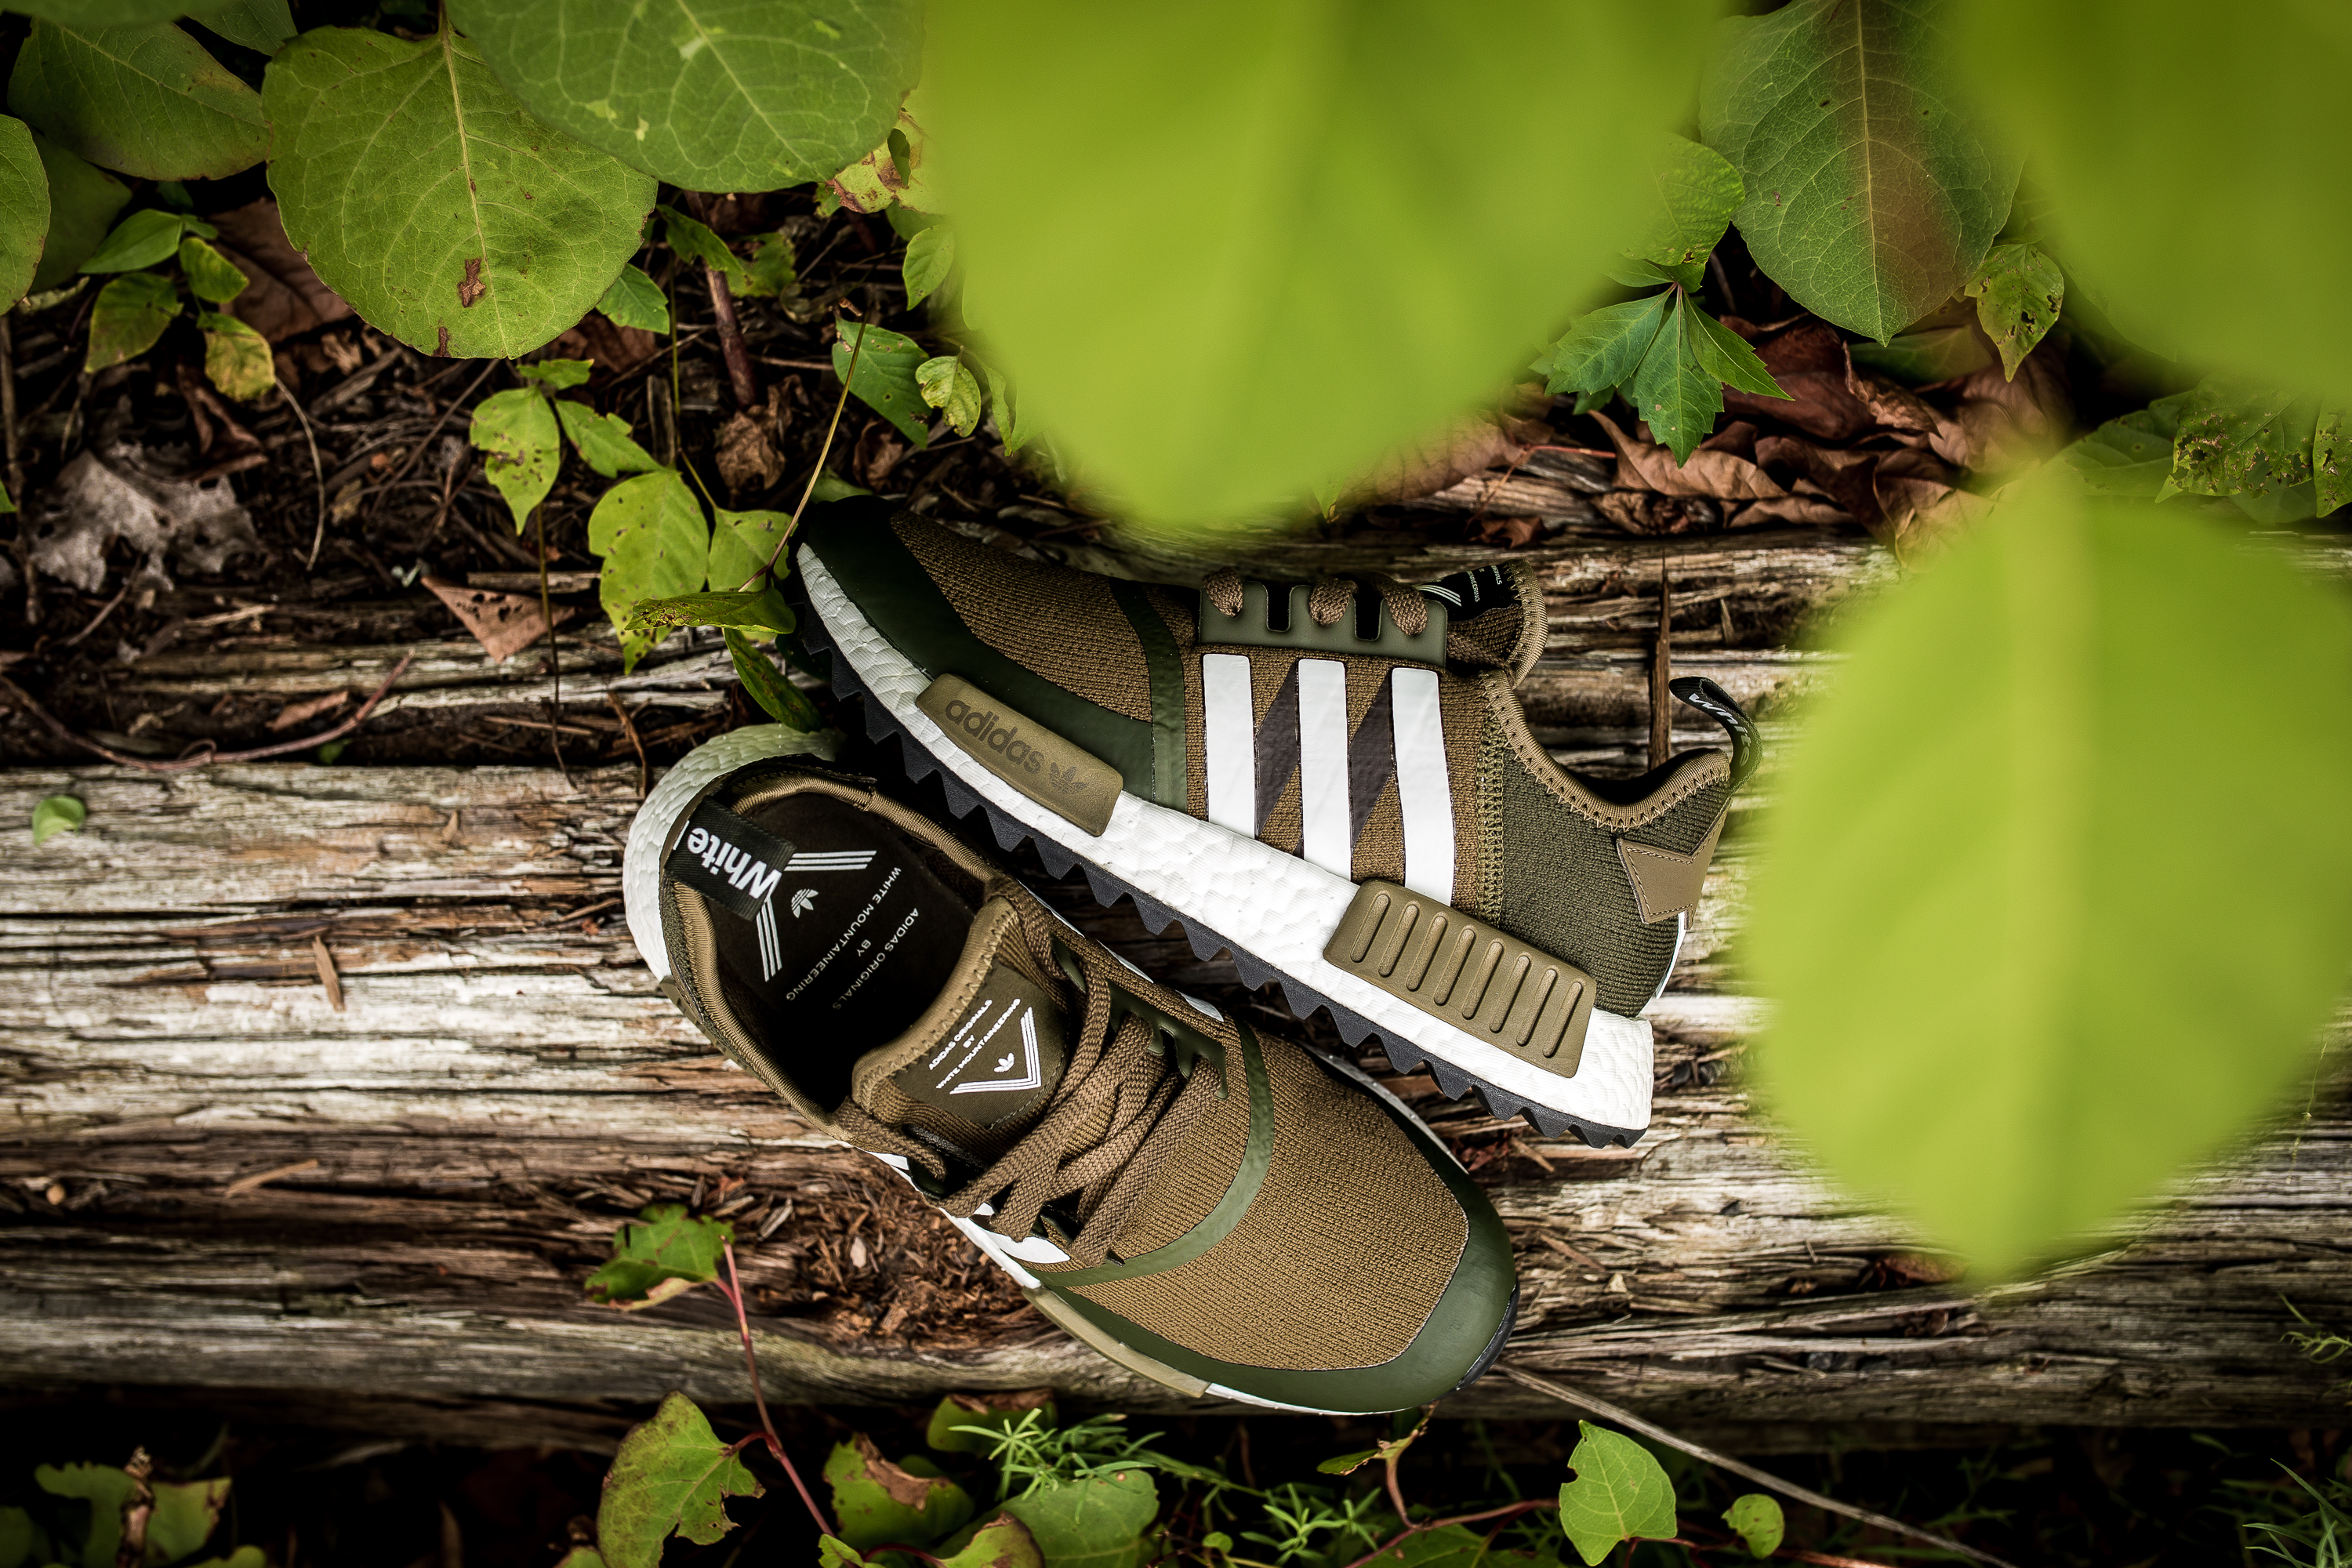 Adidas NMD R1 Runner Core Black Cargo Trail Ba 7251 Size Men 6